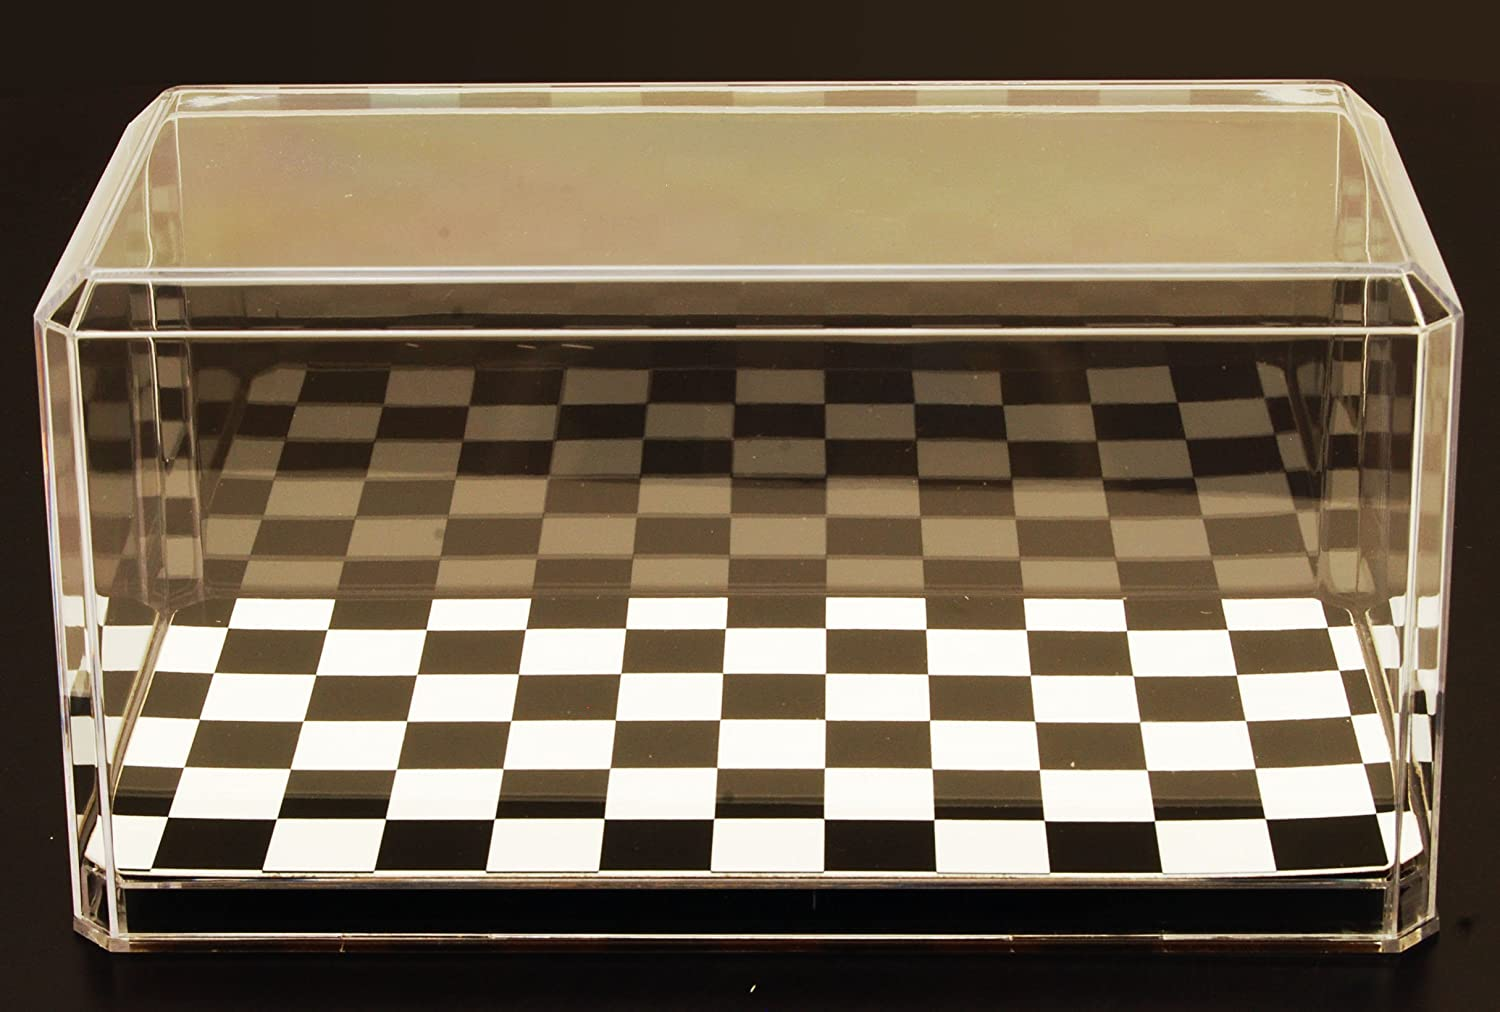 Acrylic Display Case with Checkered Flag Base for 1/24 Scale Diecast Collectibles Pioneer Plastics